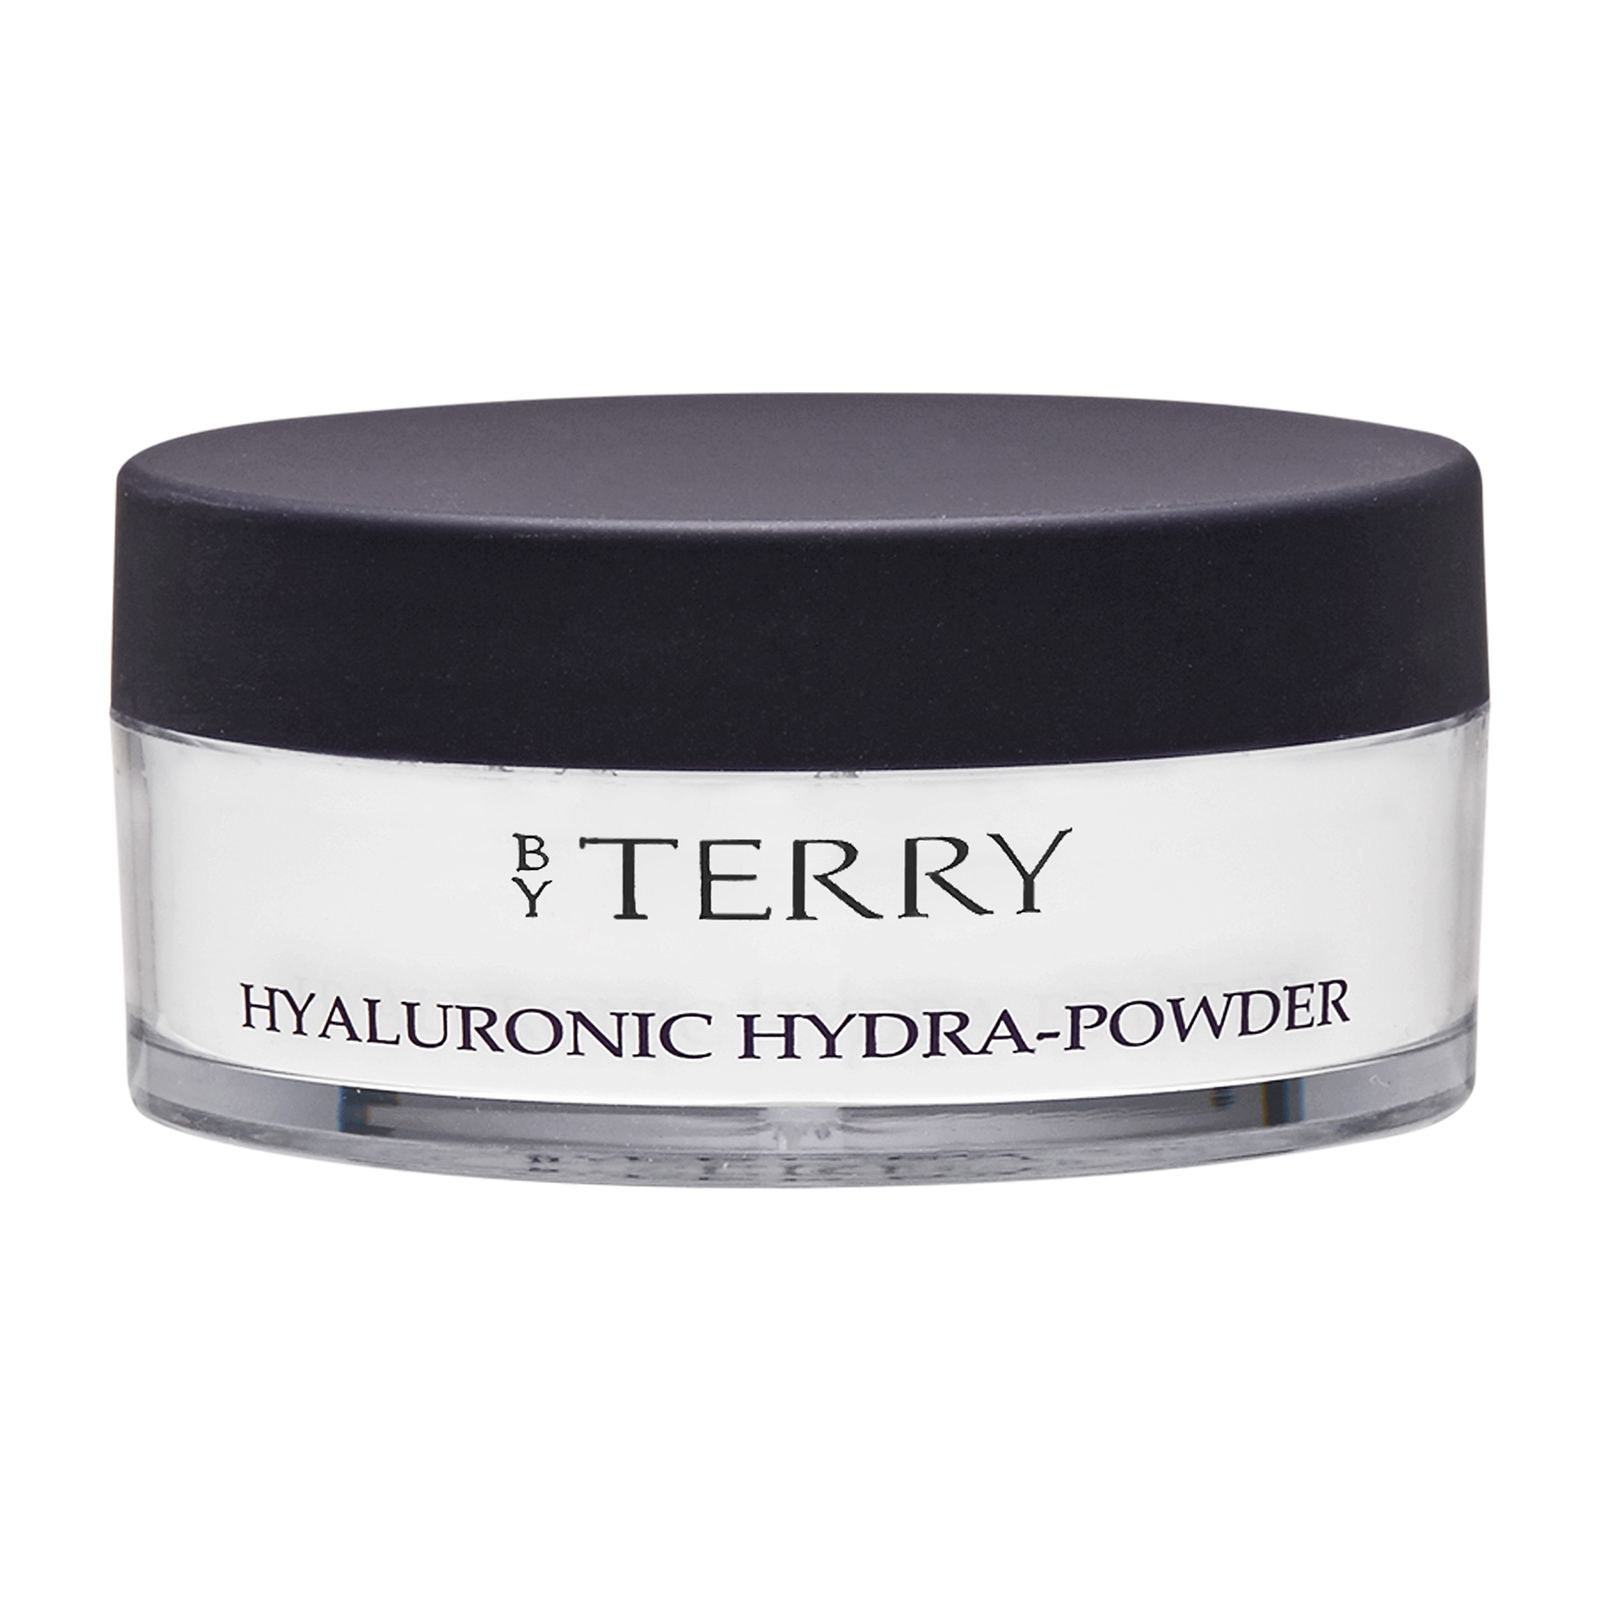 By Terry  Hyaluronic Hydra-Powder Colorless Hydra-Care Powder 0.35oz, 10g from Cosme-De.com